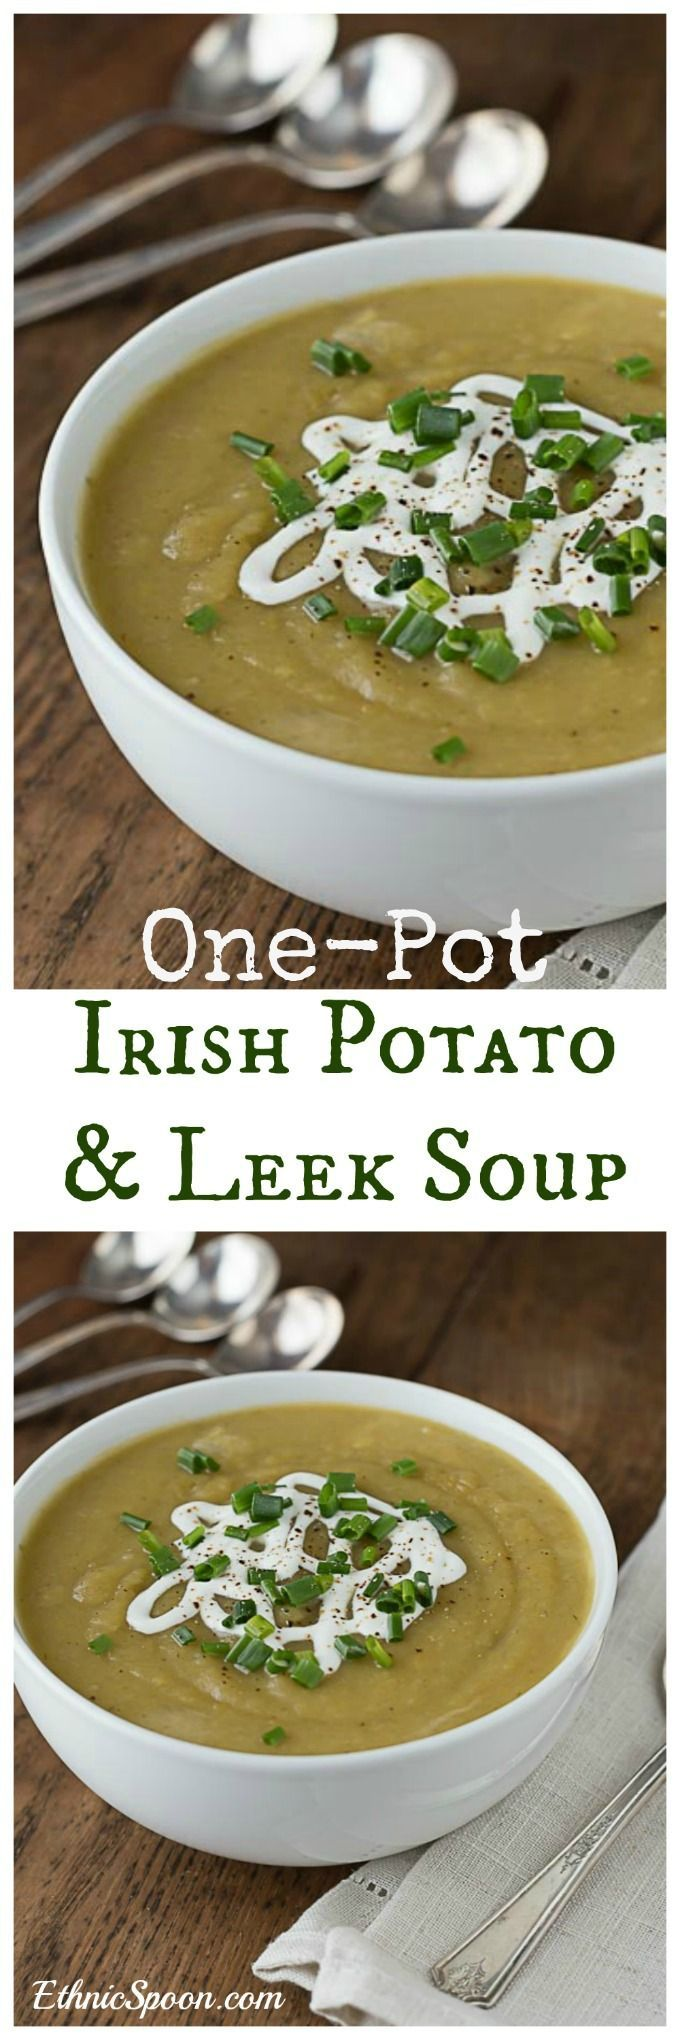 Quick easy irish recipes